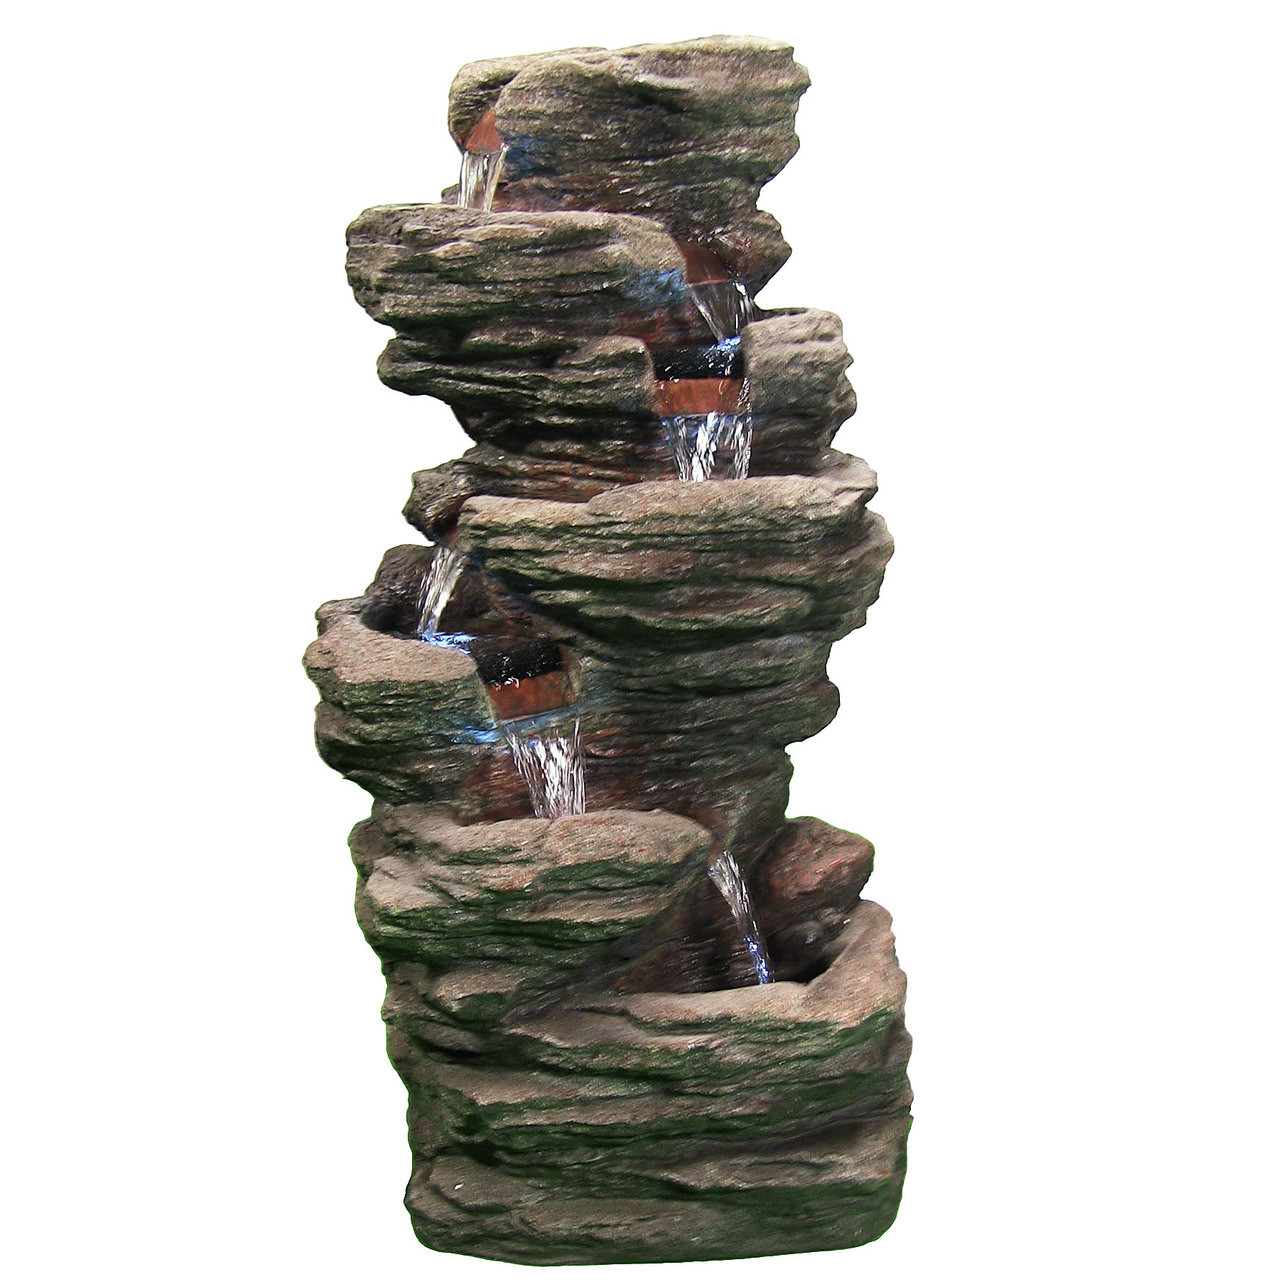 ... Sunnydaze Multi Level Flatrock Fountain With LED Lights ...